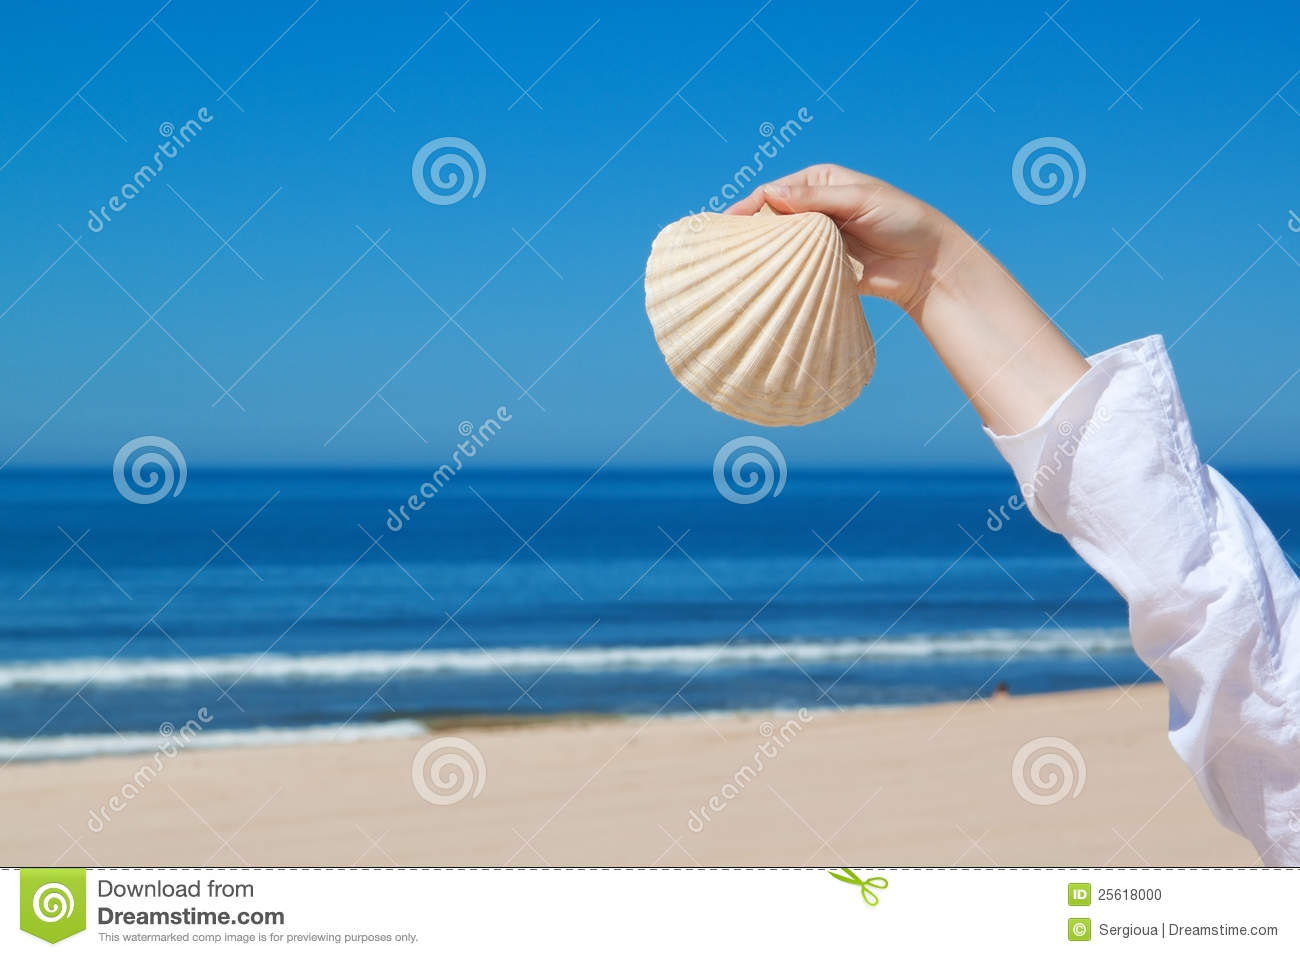 A girl holds a large seashell.